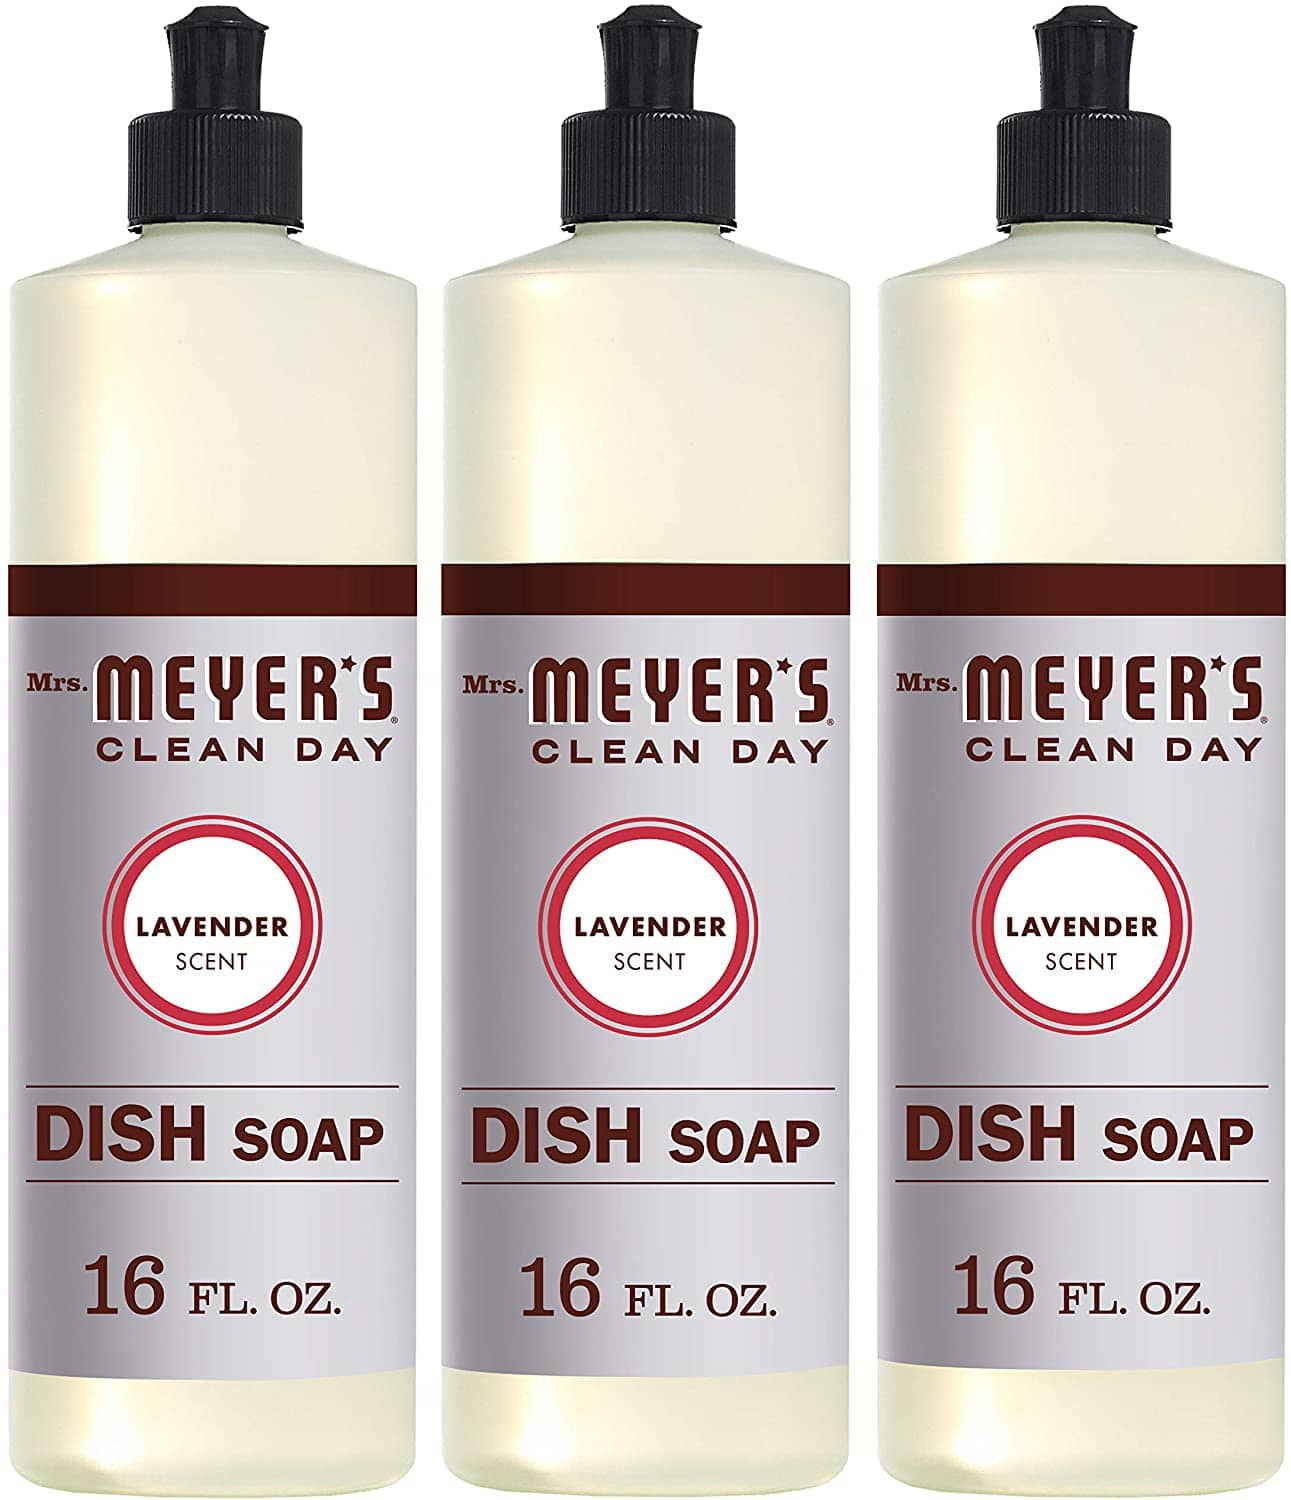 3-Count of 16-Oz Mrs. Meyers Clean Day Liquid Dish Soap (Lavender or Lemon Verbena) $8.75 w/ S&S + Free Shipping w/ Prime or on $25+